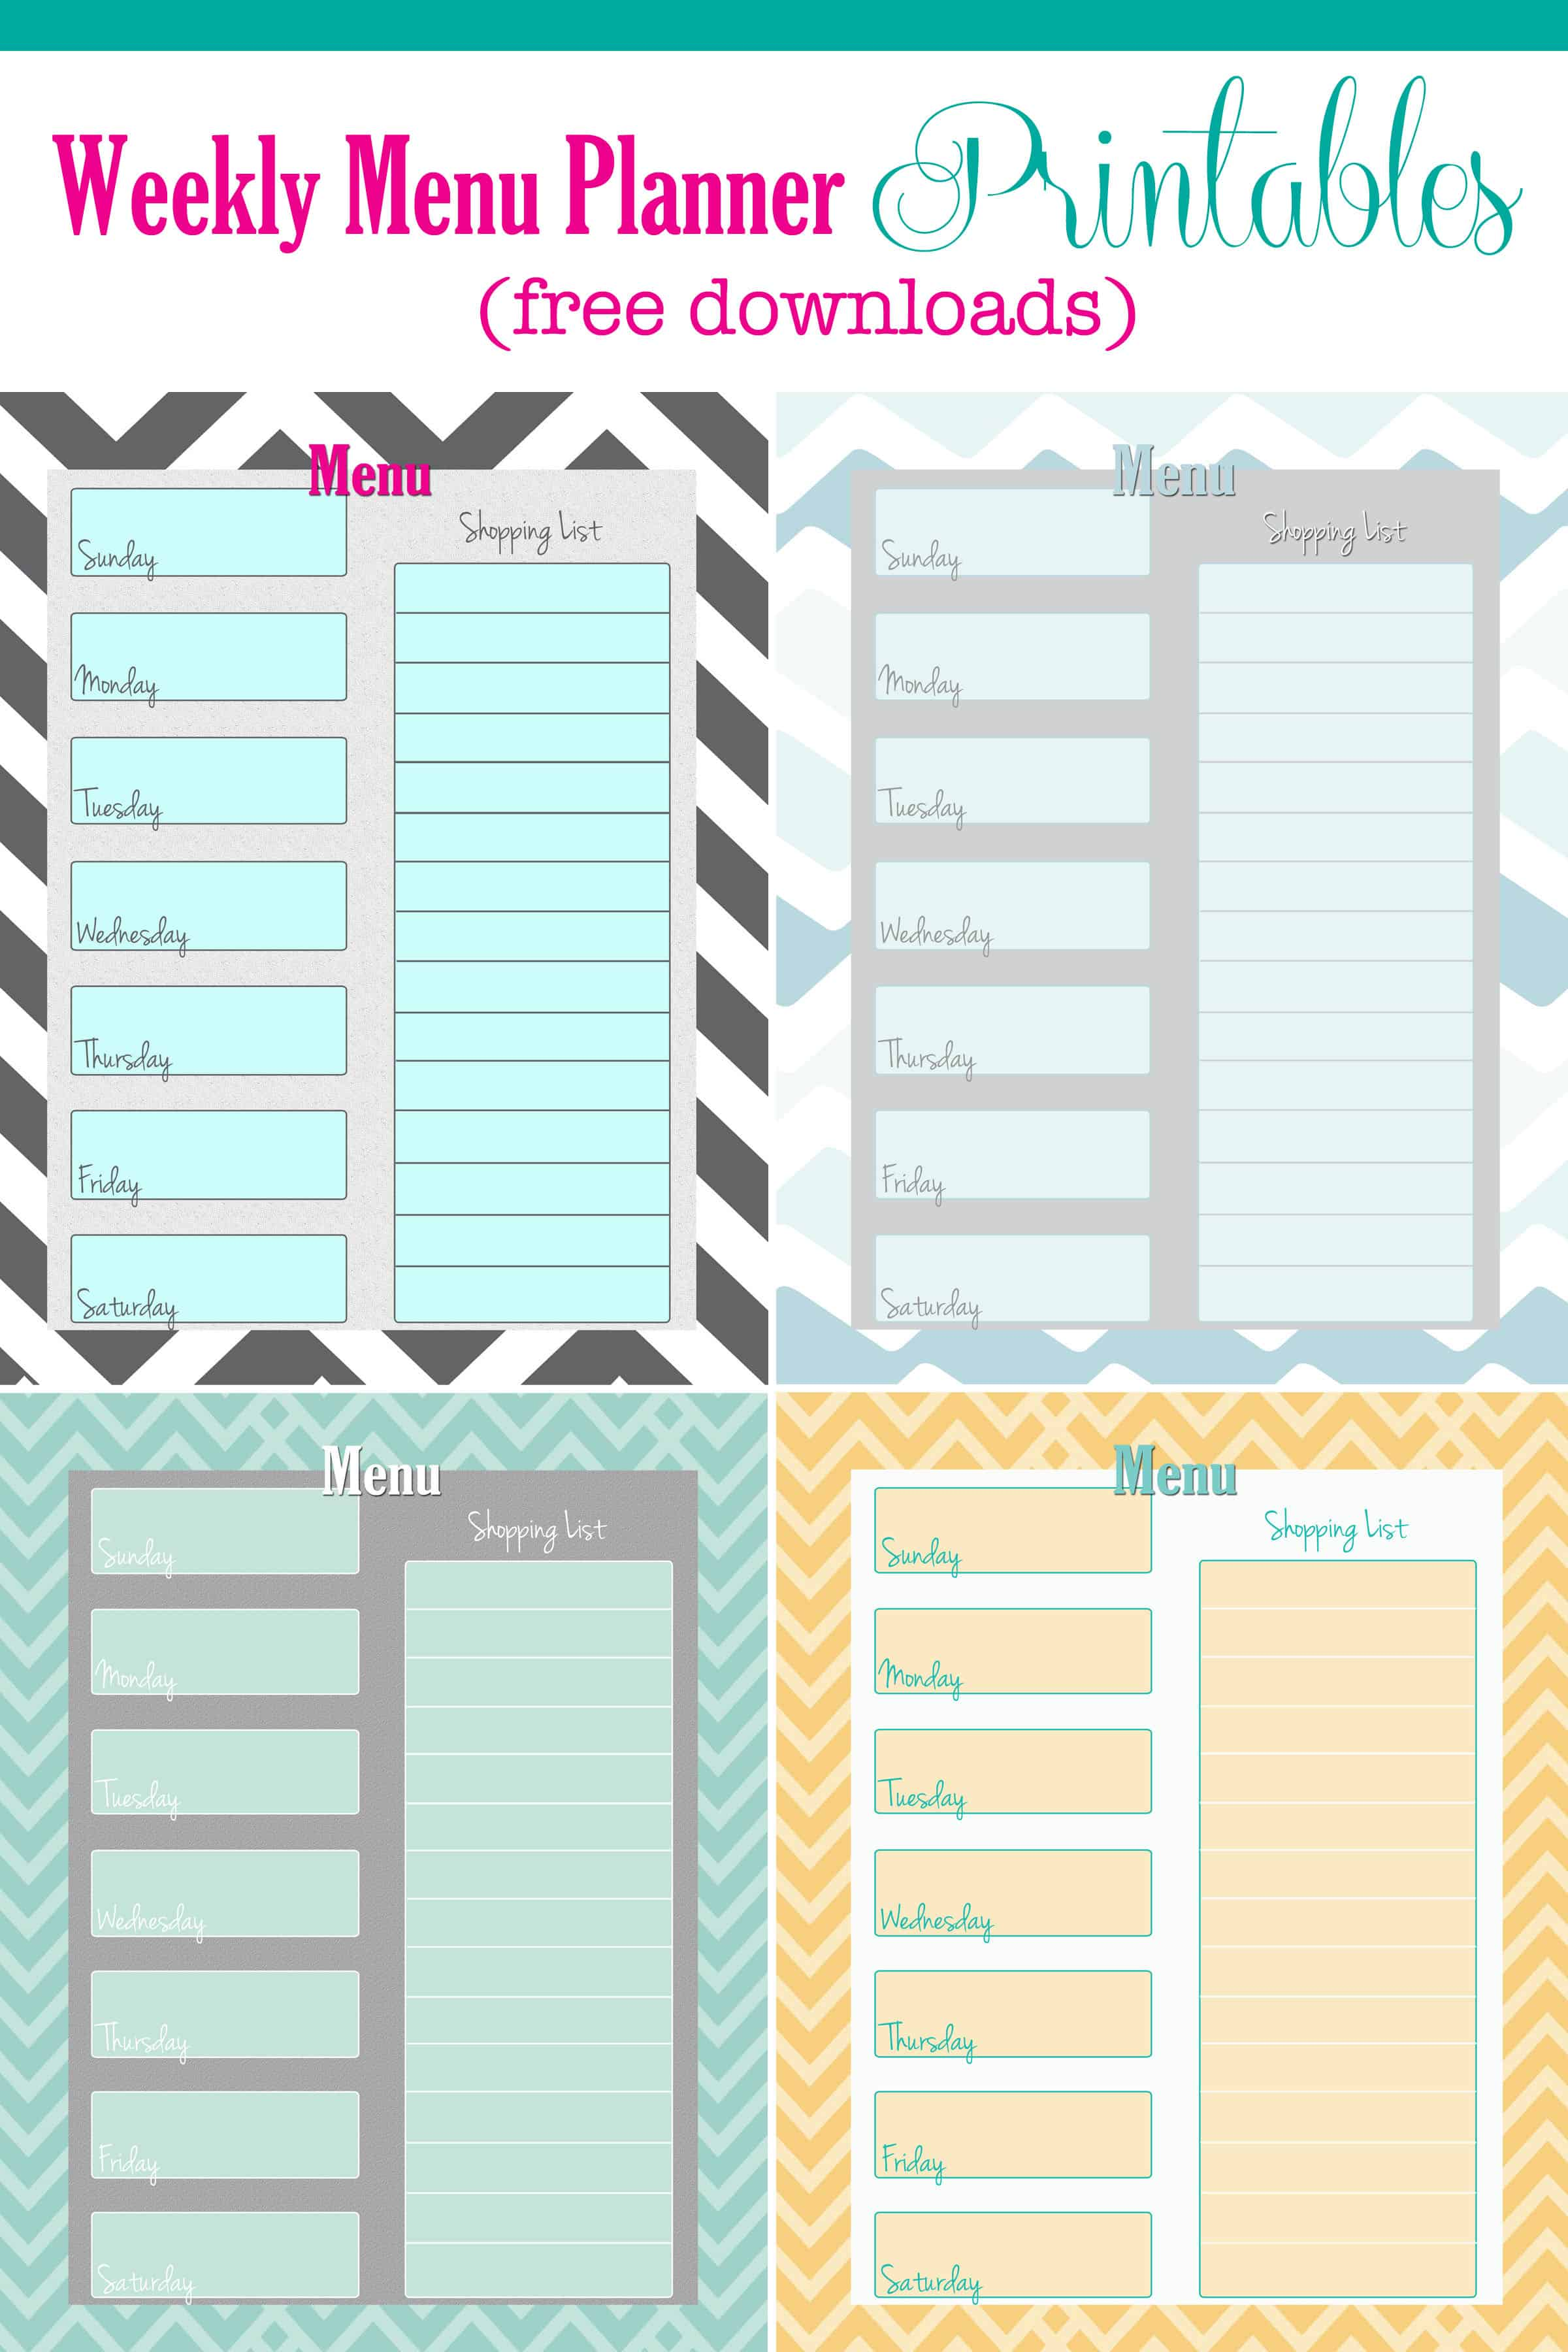 photograph about Weekly Menu Planner Printable identified as Cost-free Weekly Menu Planner Printable (4 Hues) - Cupcake Diaries